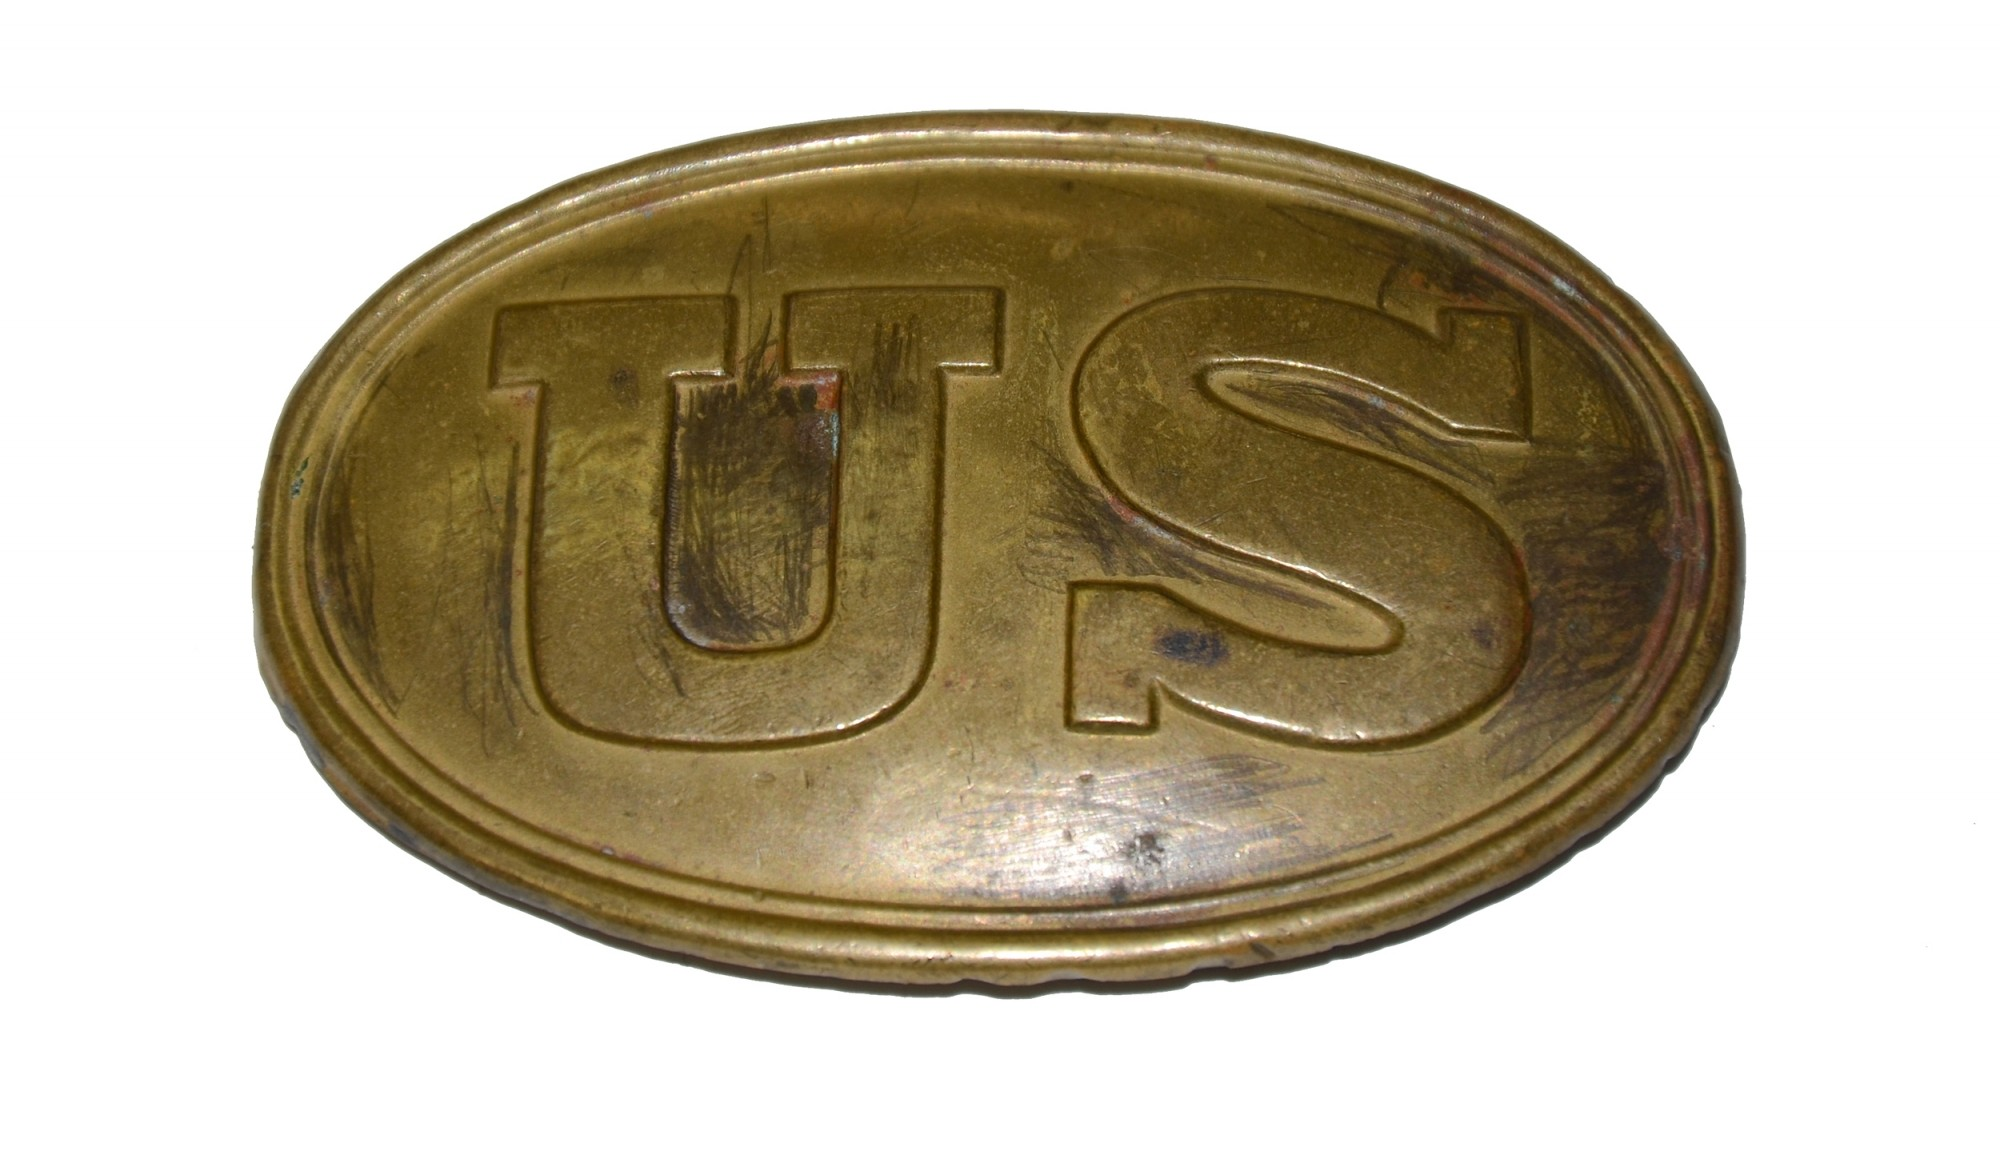 US DRAGOON BELT PLATE 1839 PATTERN, BOYD & SONS